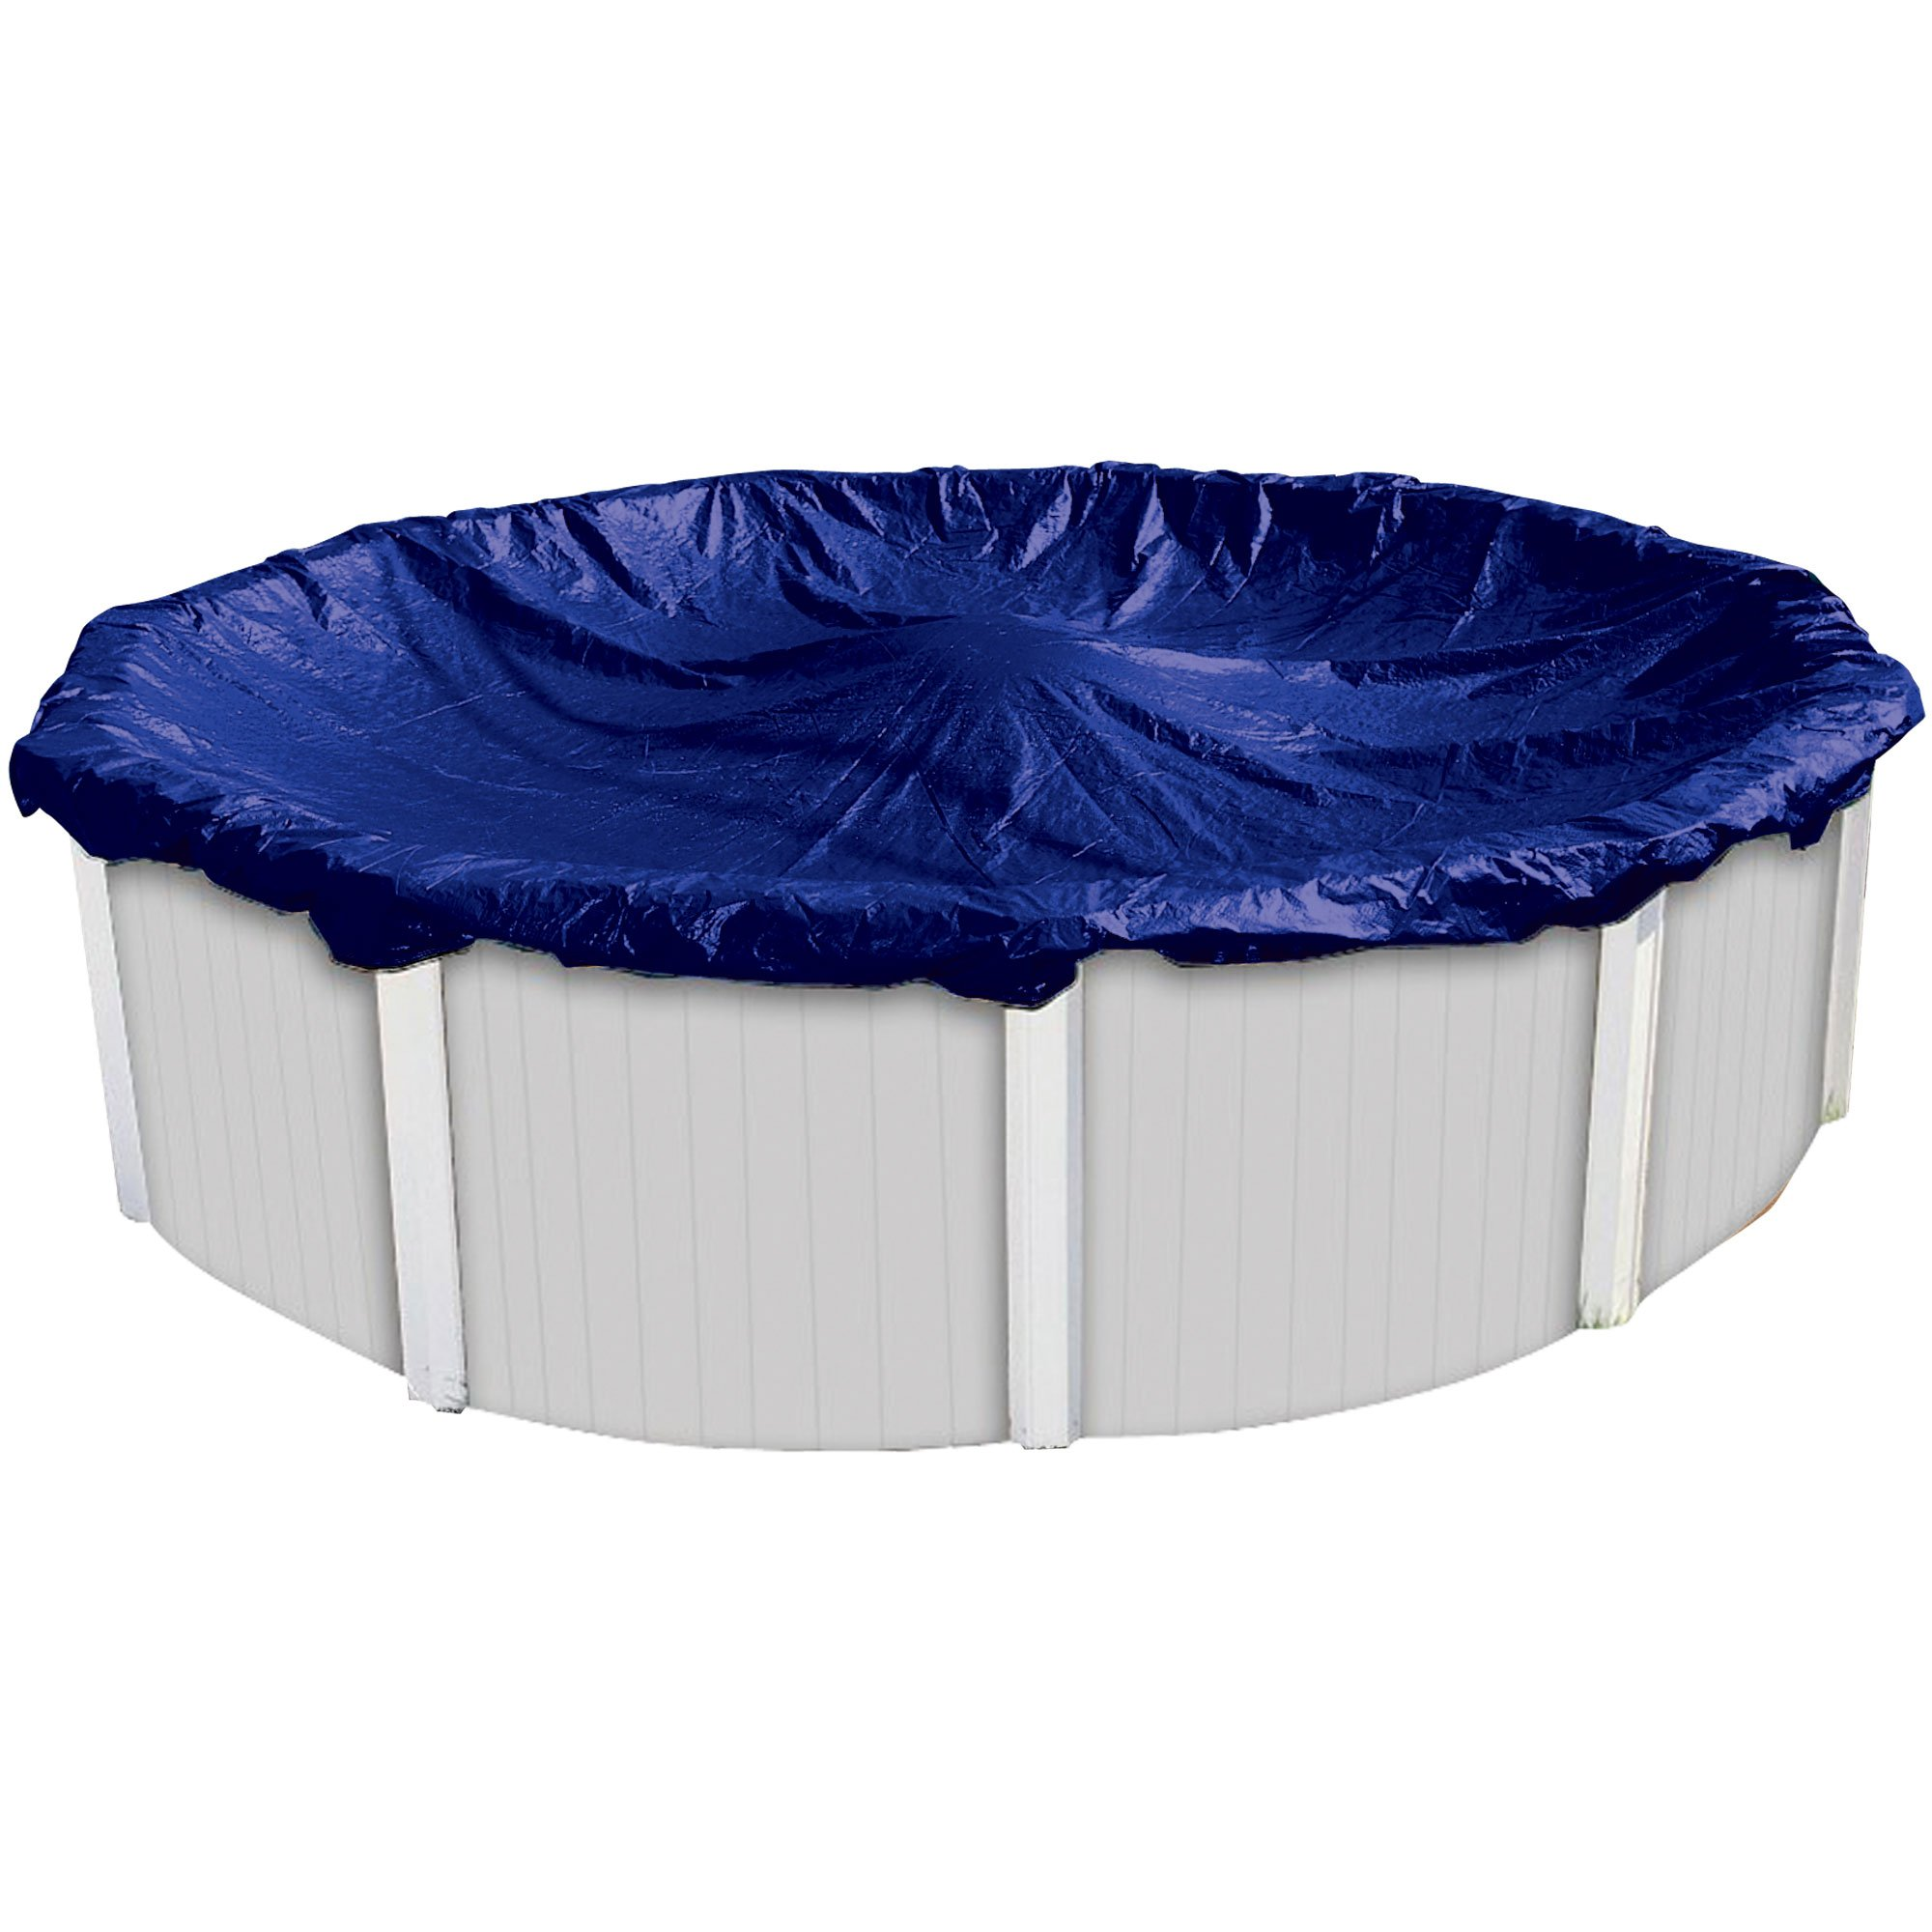 Harris 10-Year Economy Winter Cover for 28' Above Ground Round Pool